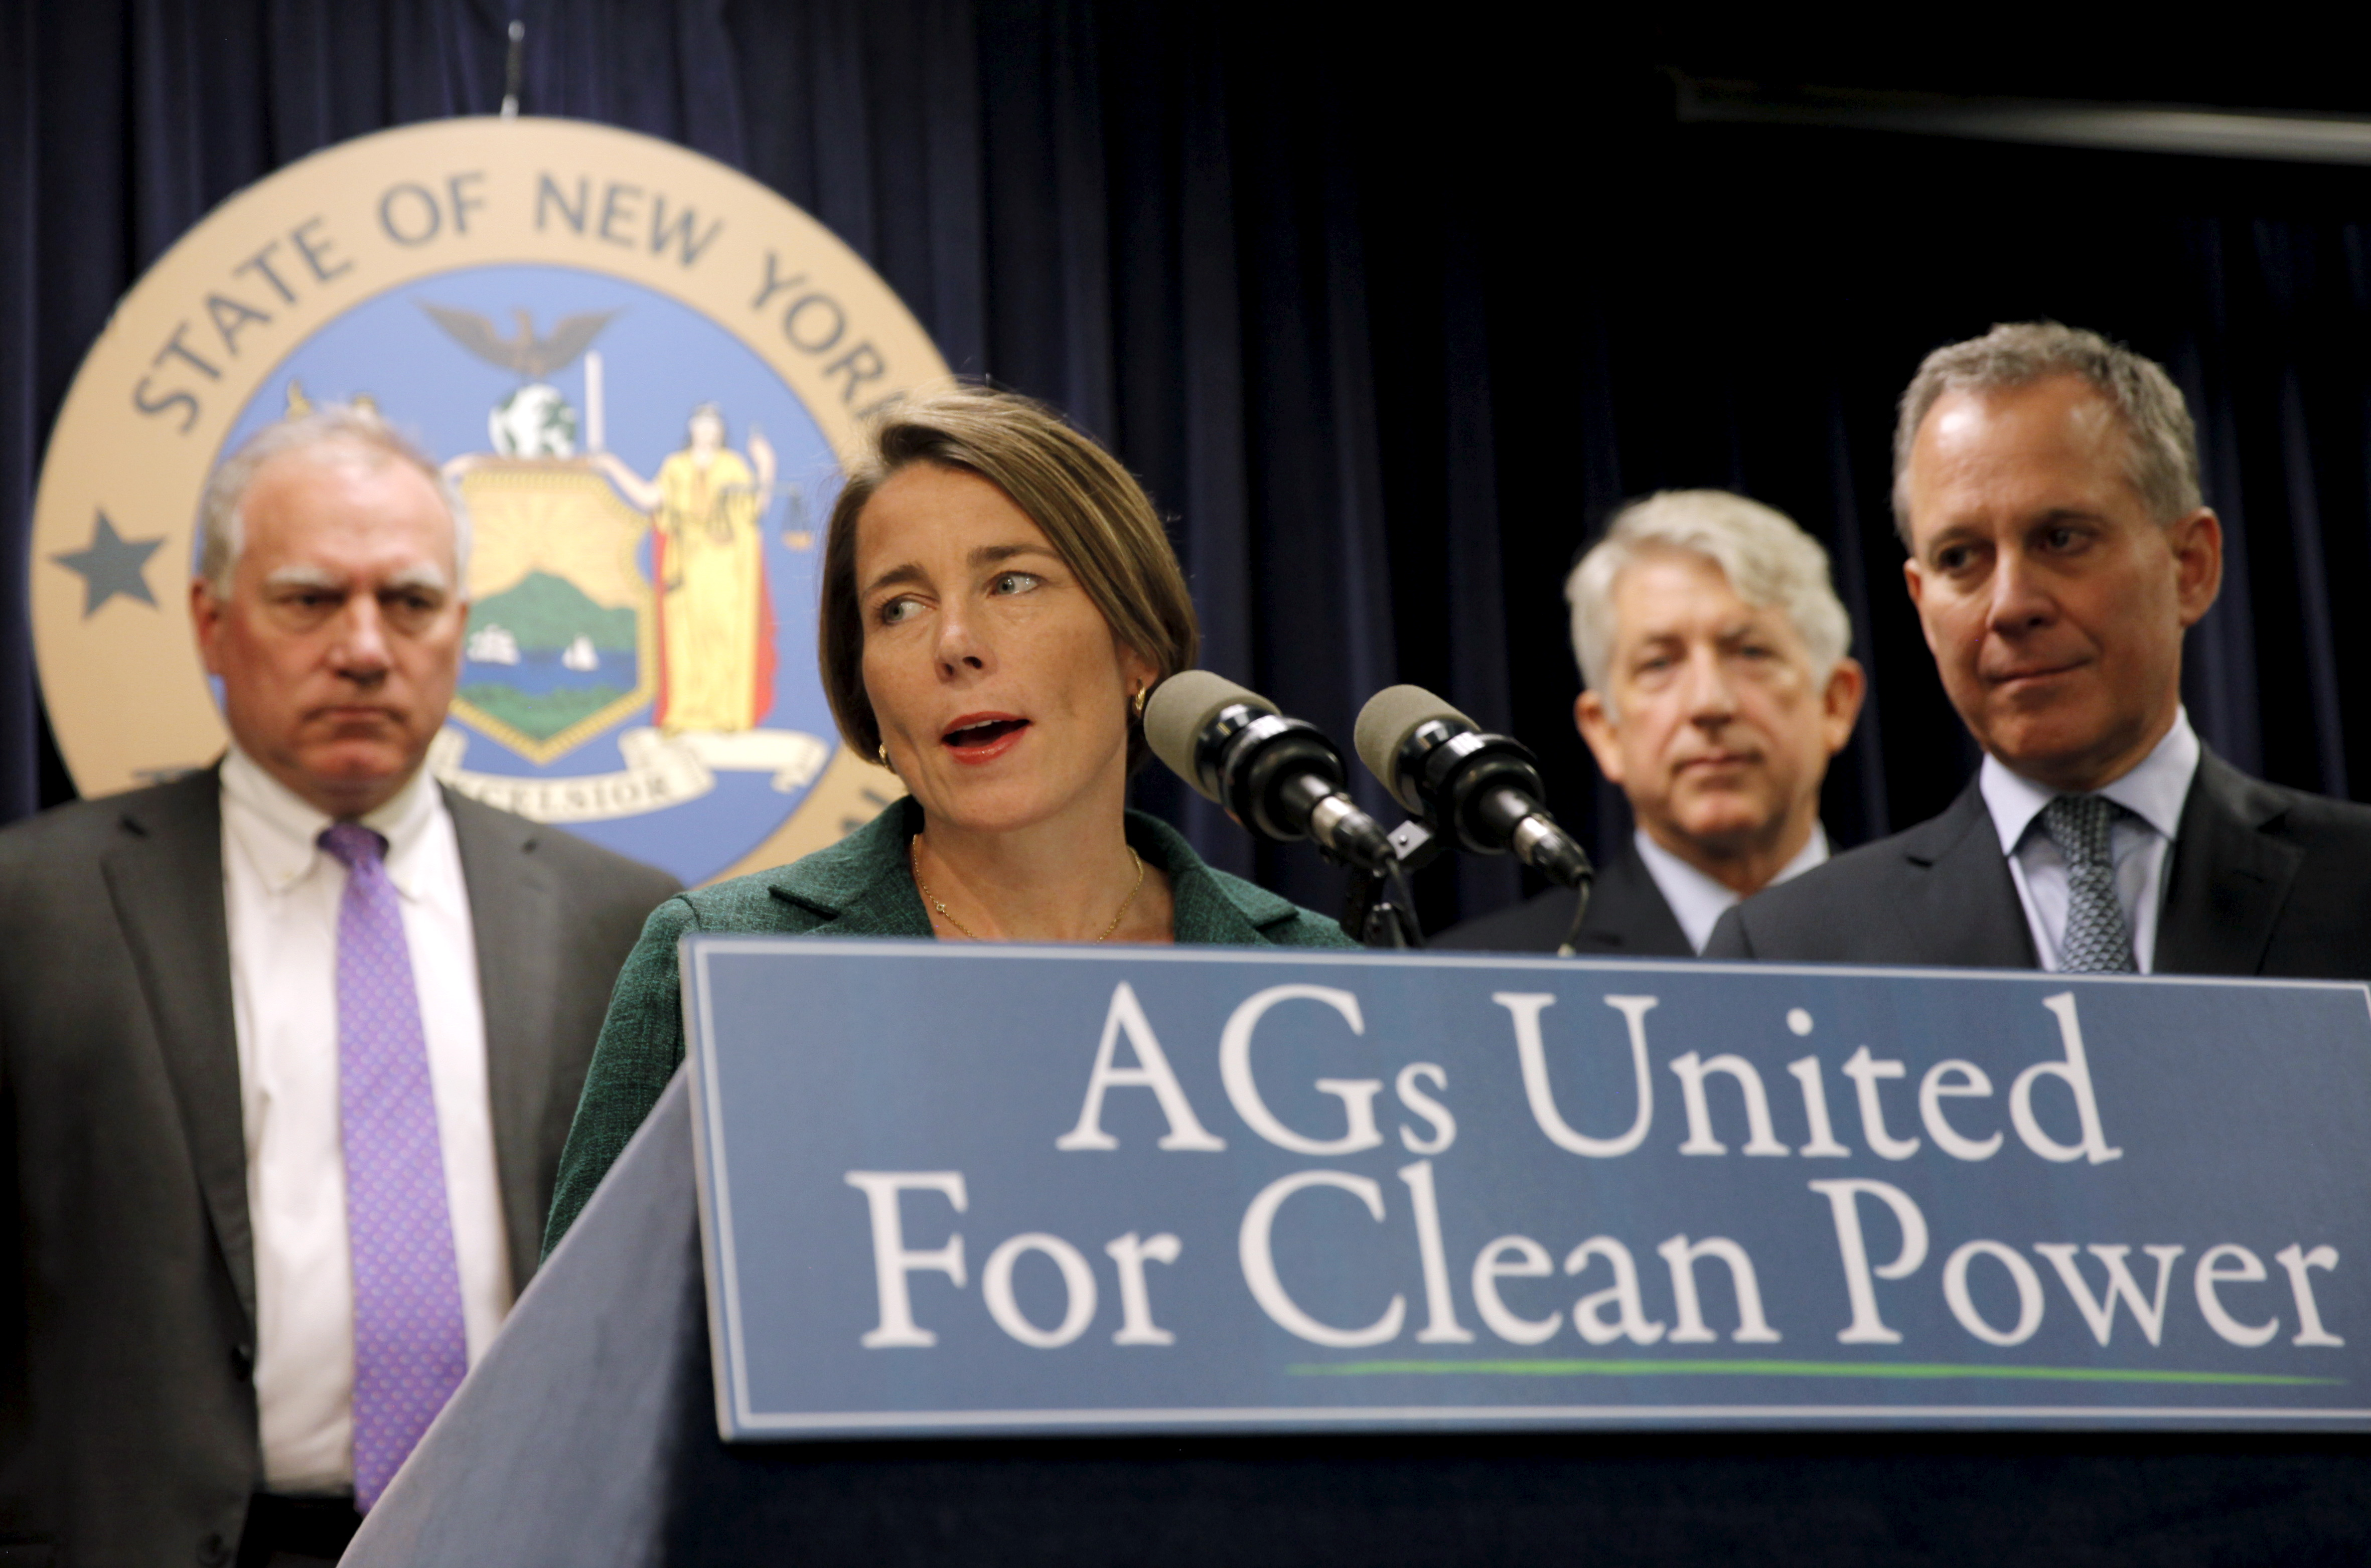 Massachusetts Attorney General Maura Healey speaks at a news conference with New York Attorney General Eric Schneiderman and other U.S. State Attorney's General to announce a state-based effort to combat climate change in the Manhattan borough of New York